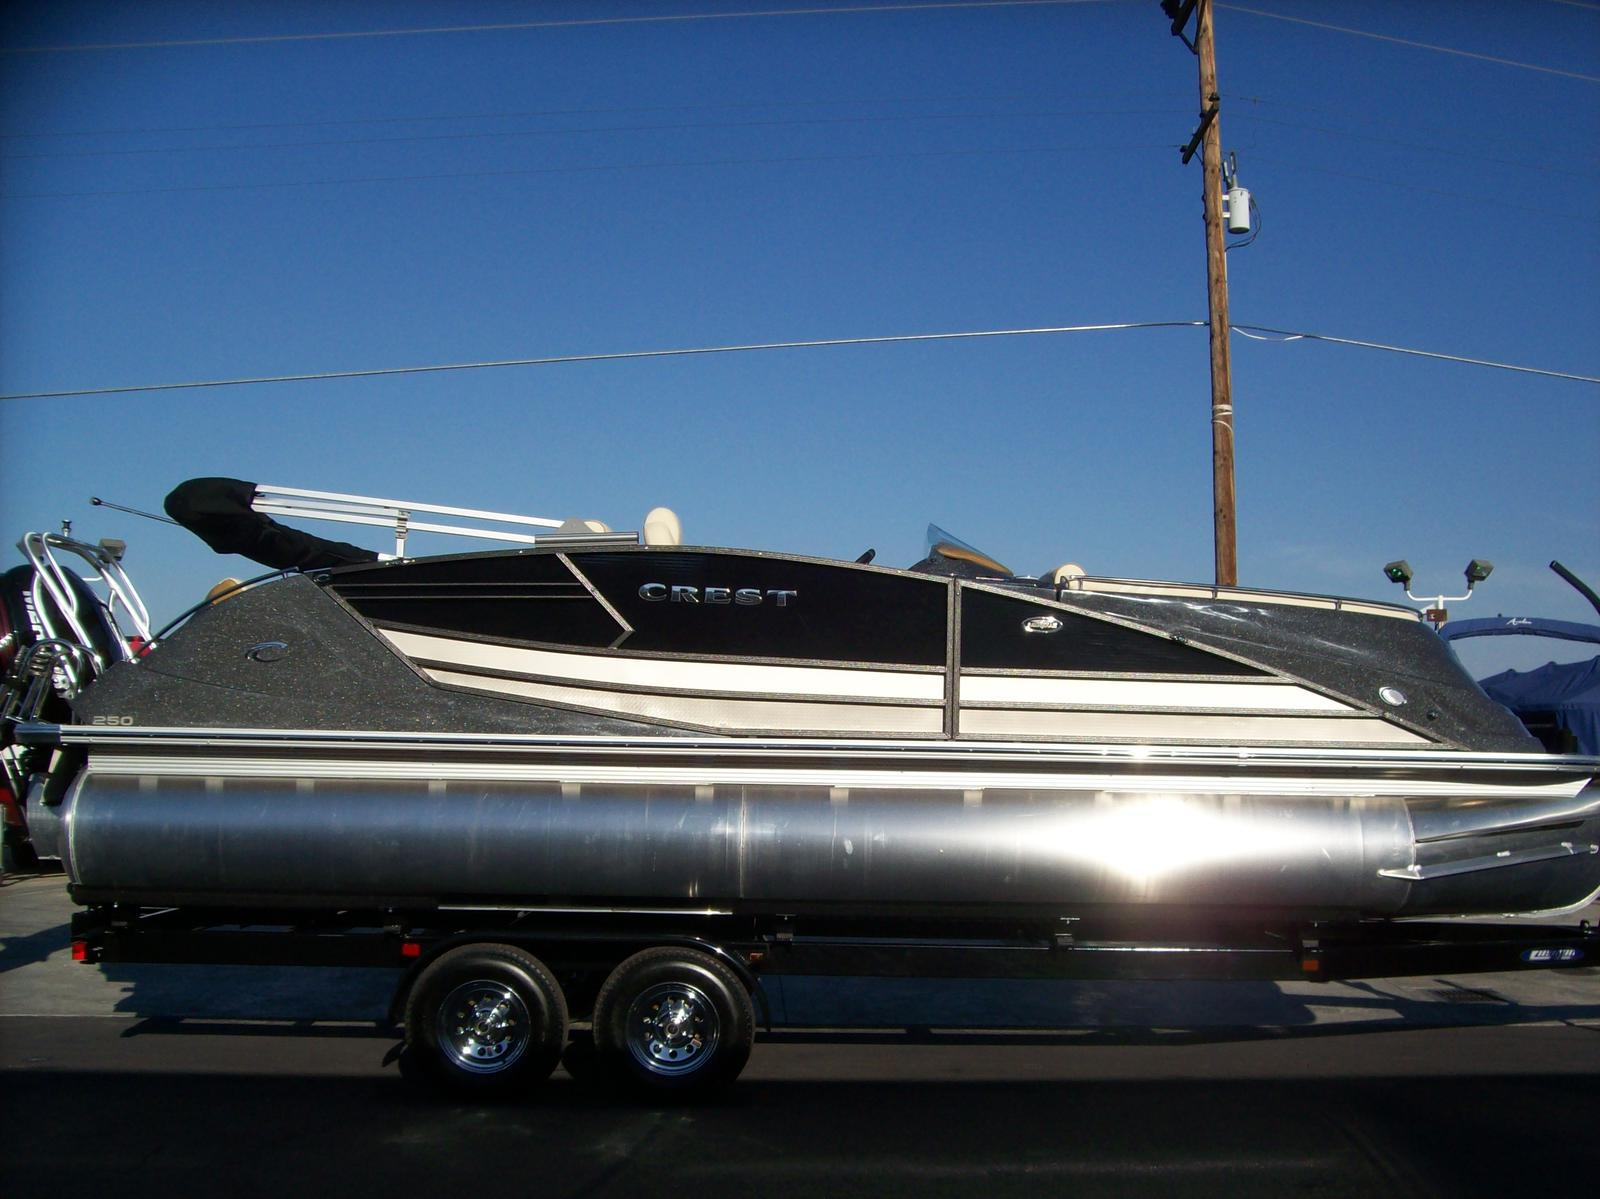 Crest Pontoon Boats Savannah 250 NX-SLR2-Mercury Verado